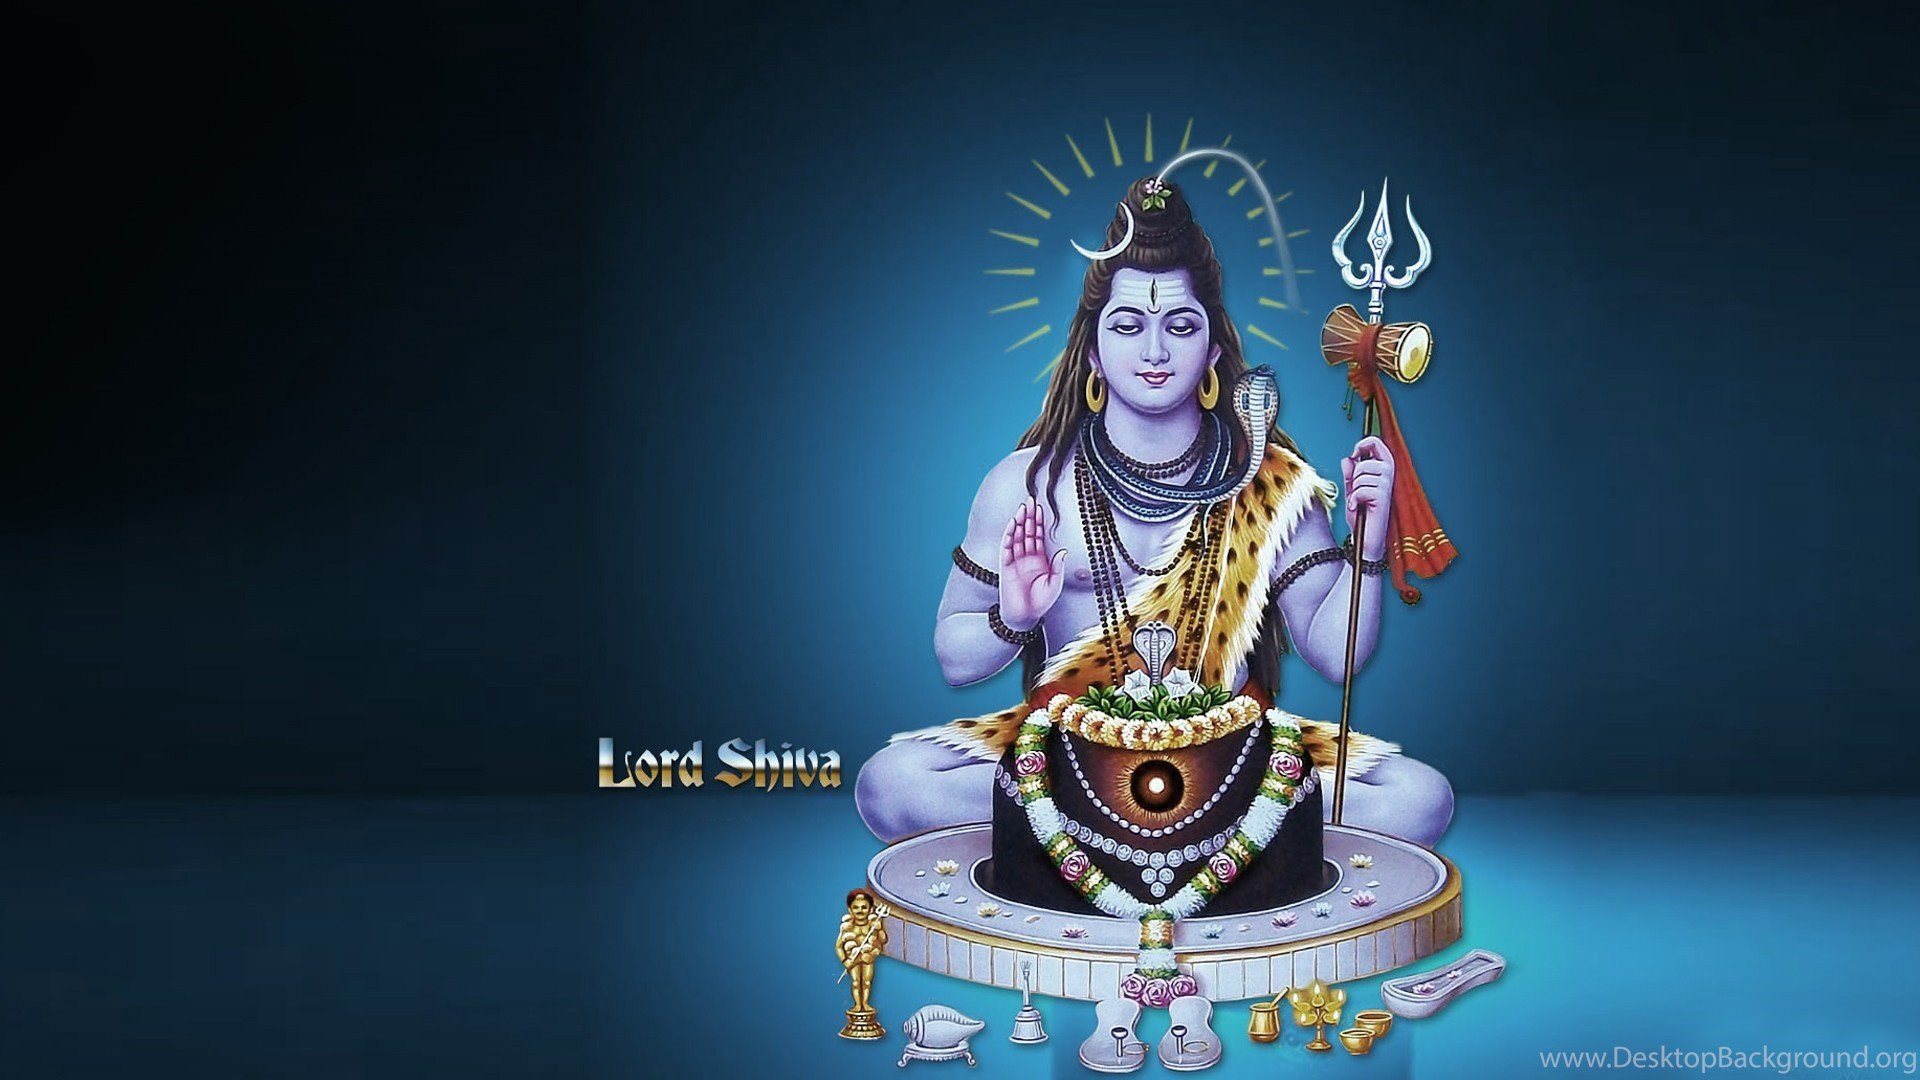 Lord Shiva New Hd Wallpapers Download Desktop Background